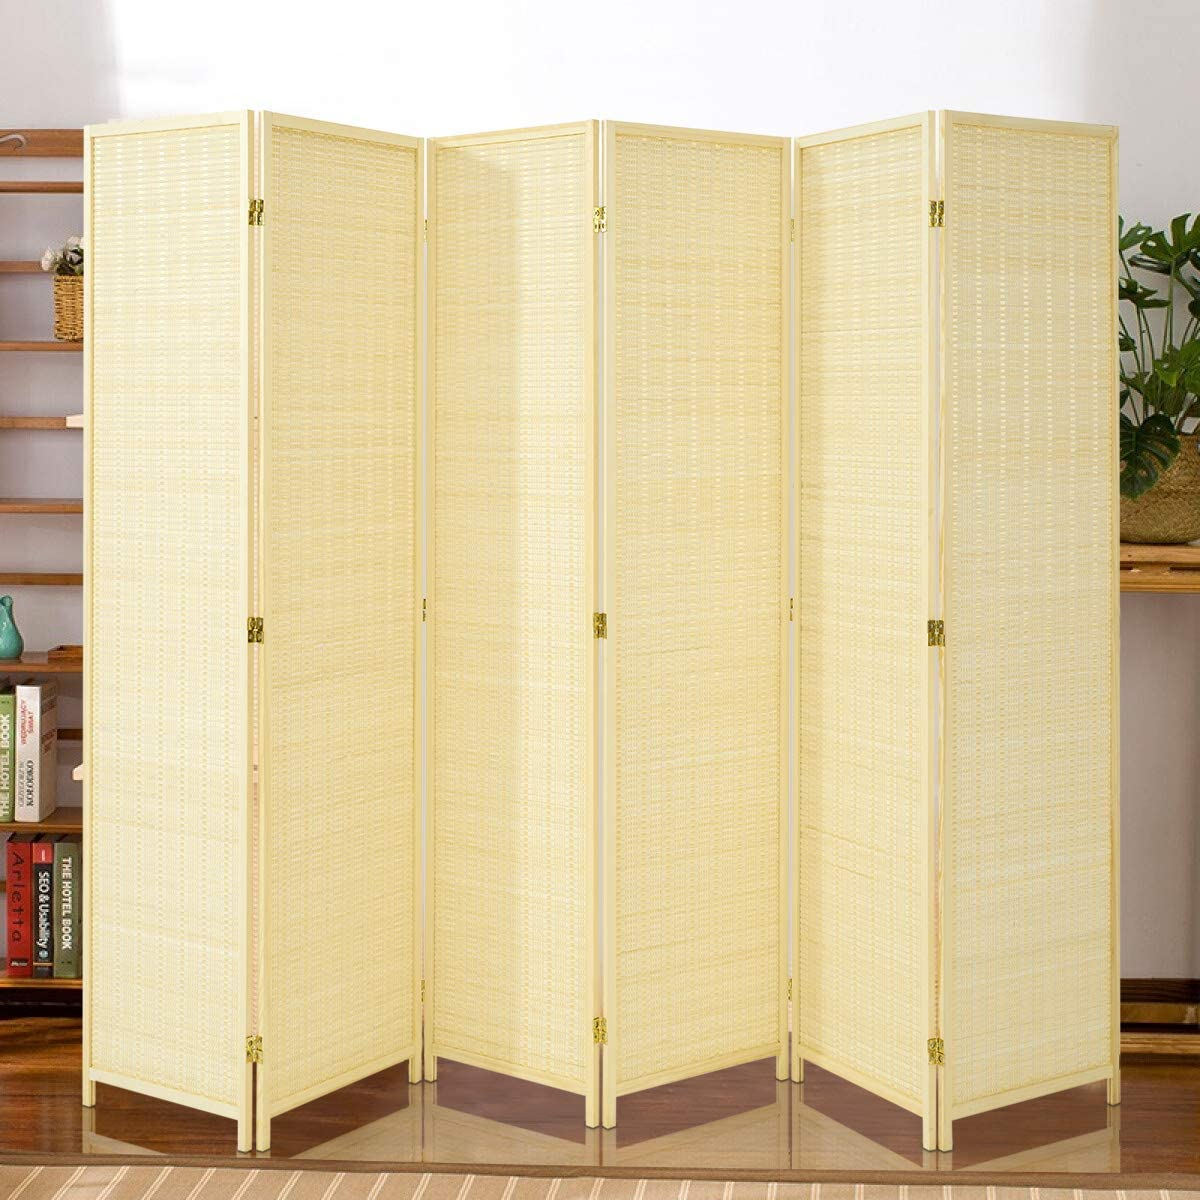 Esright 6 Panel Bamboo Room Divider, 6 Ft Tall Folding Privacy Screen Room Divider, Freestanding Partition Wall Dividers for Office,Bedroom, Beige